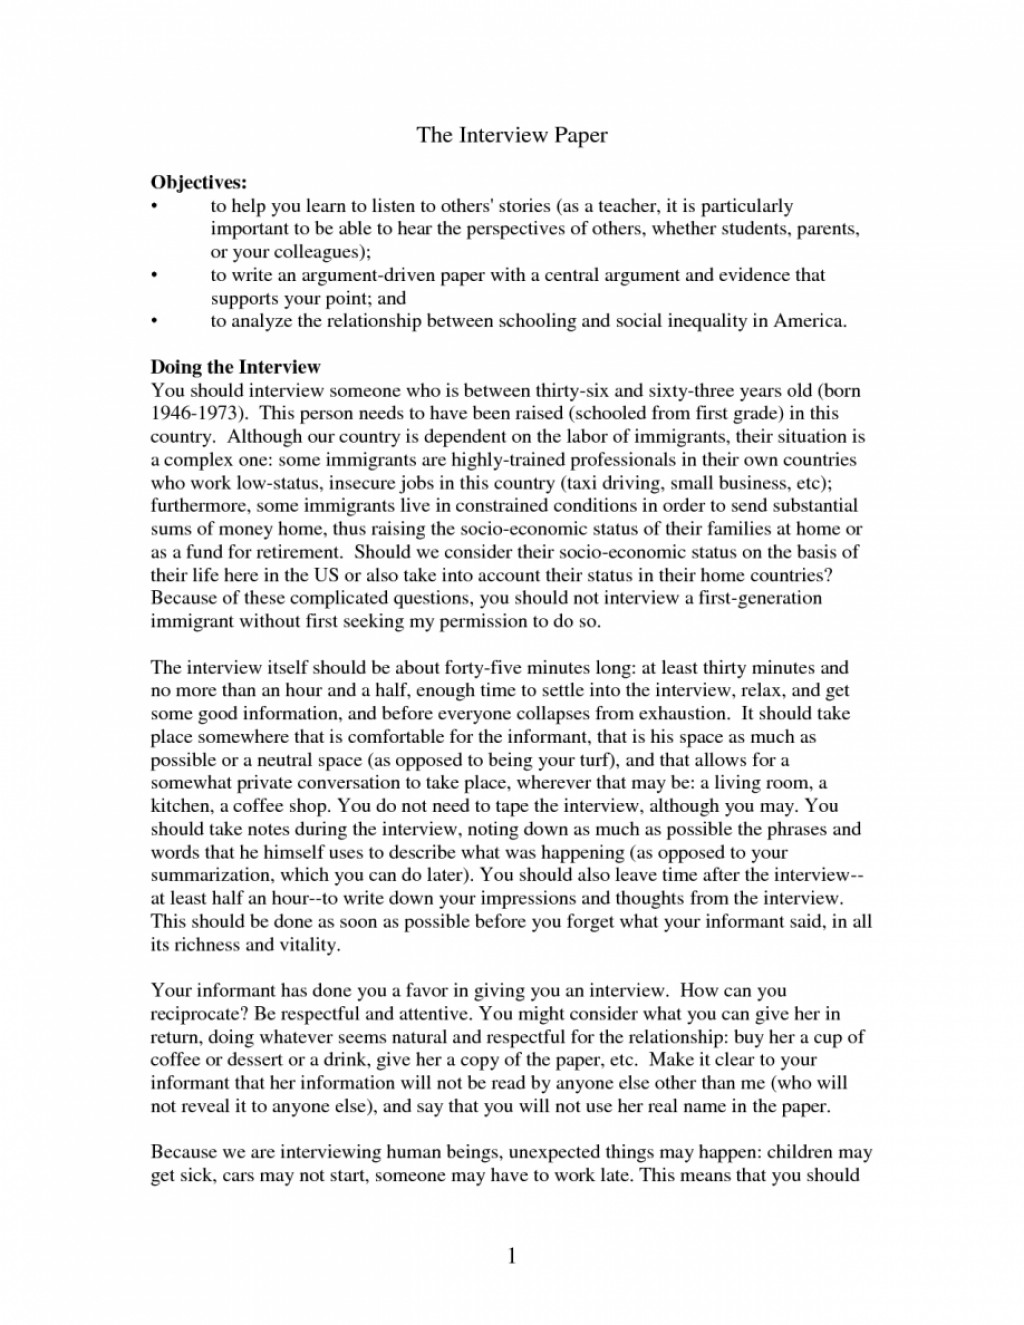 008 How To Write An Interview Essay Example Pics Paper Resume Ideas Cilook In Based On After Apa From For Job Third Person Mla Format Research Excellent Introduction Large